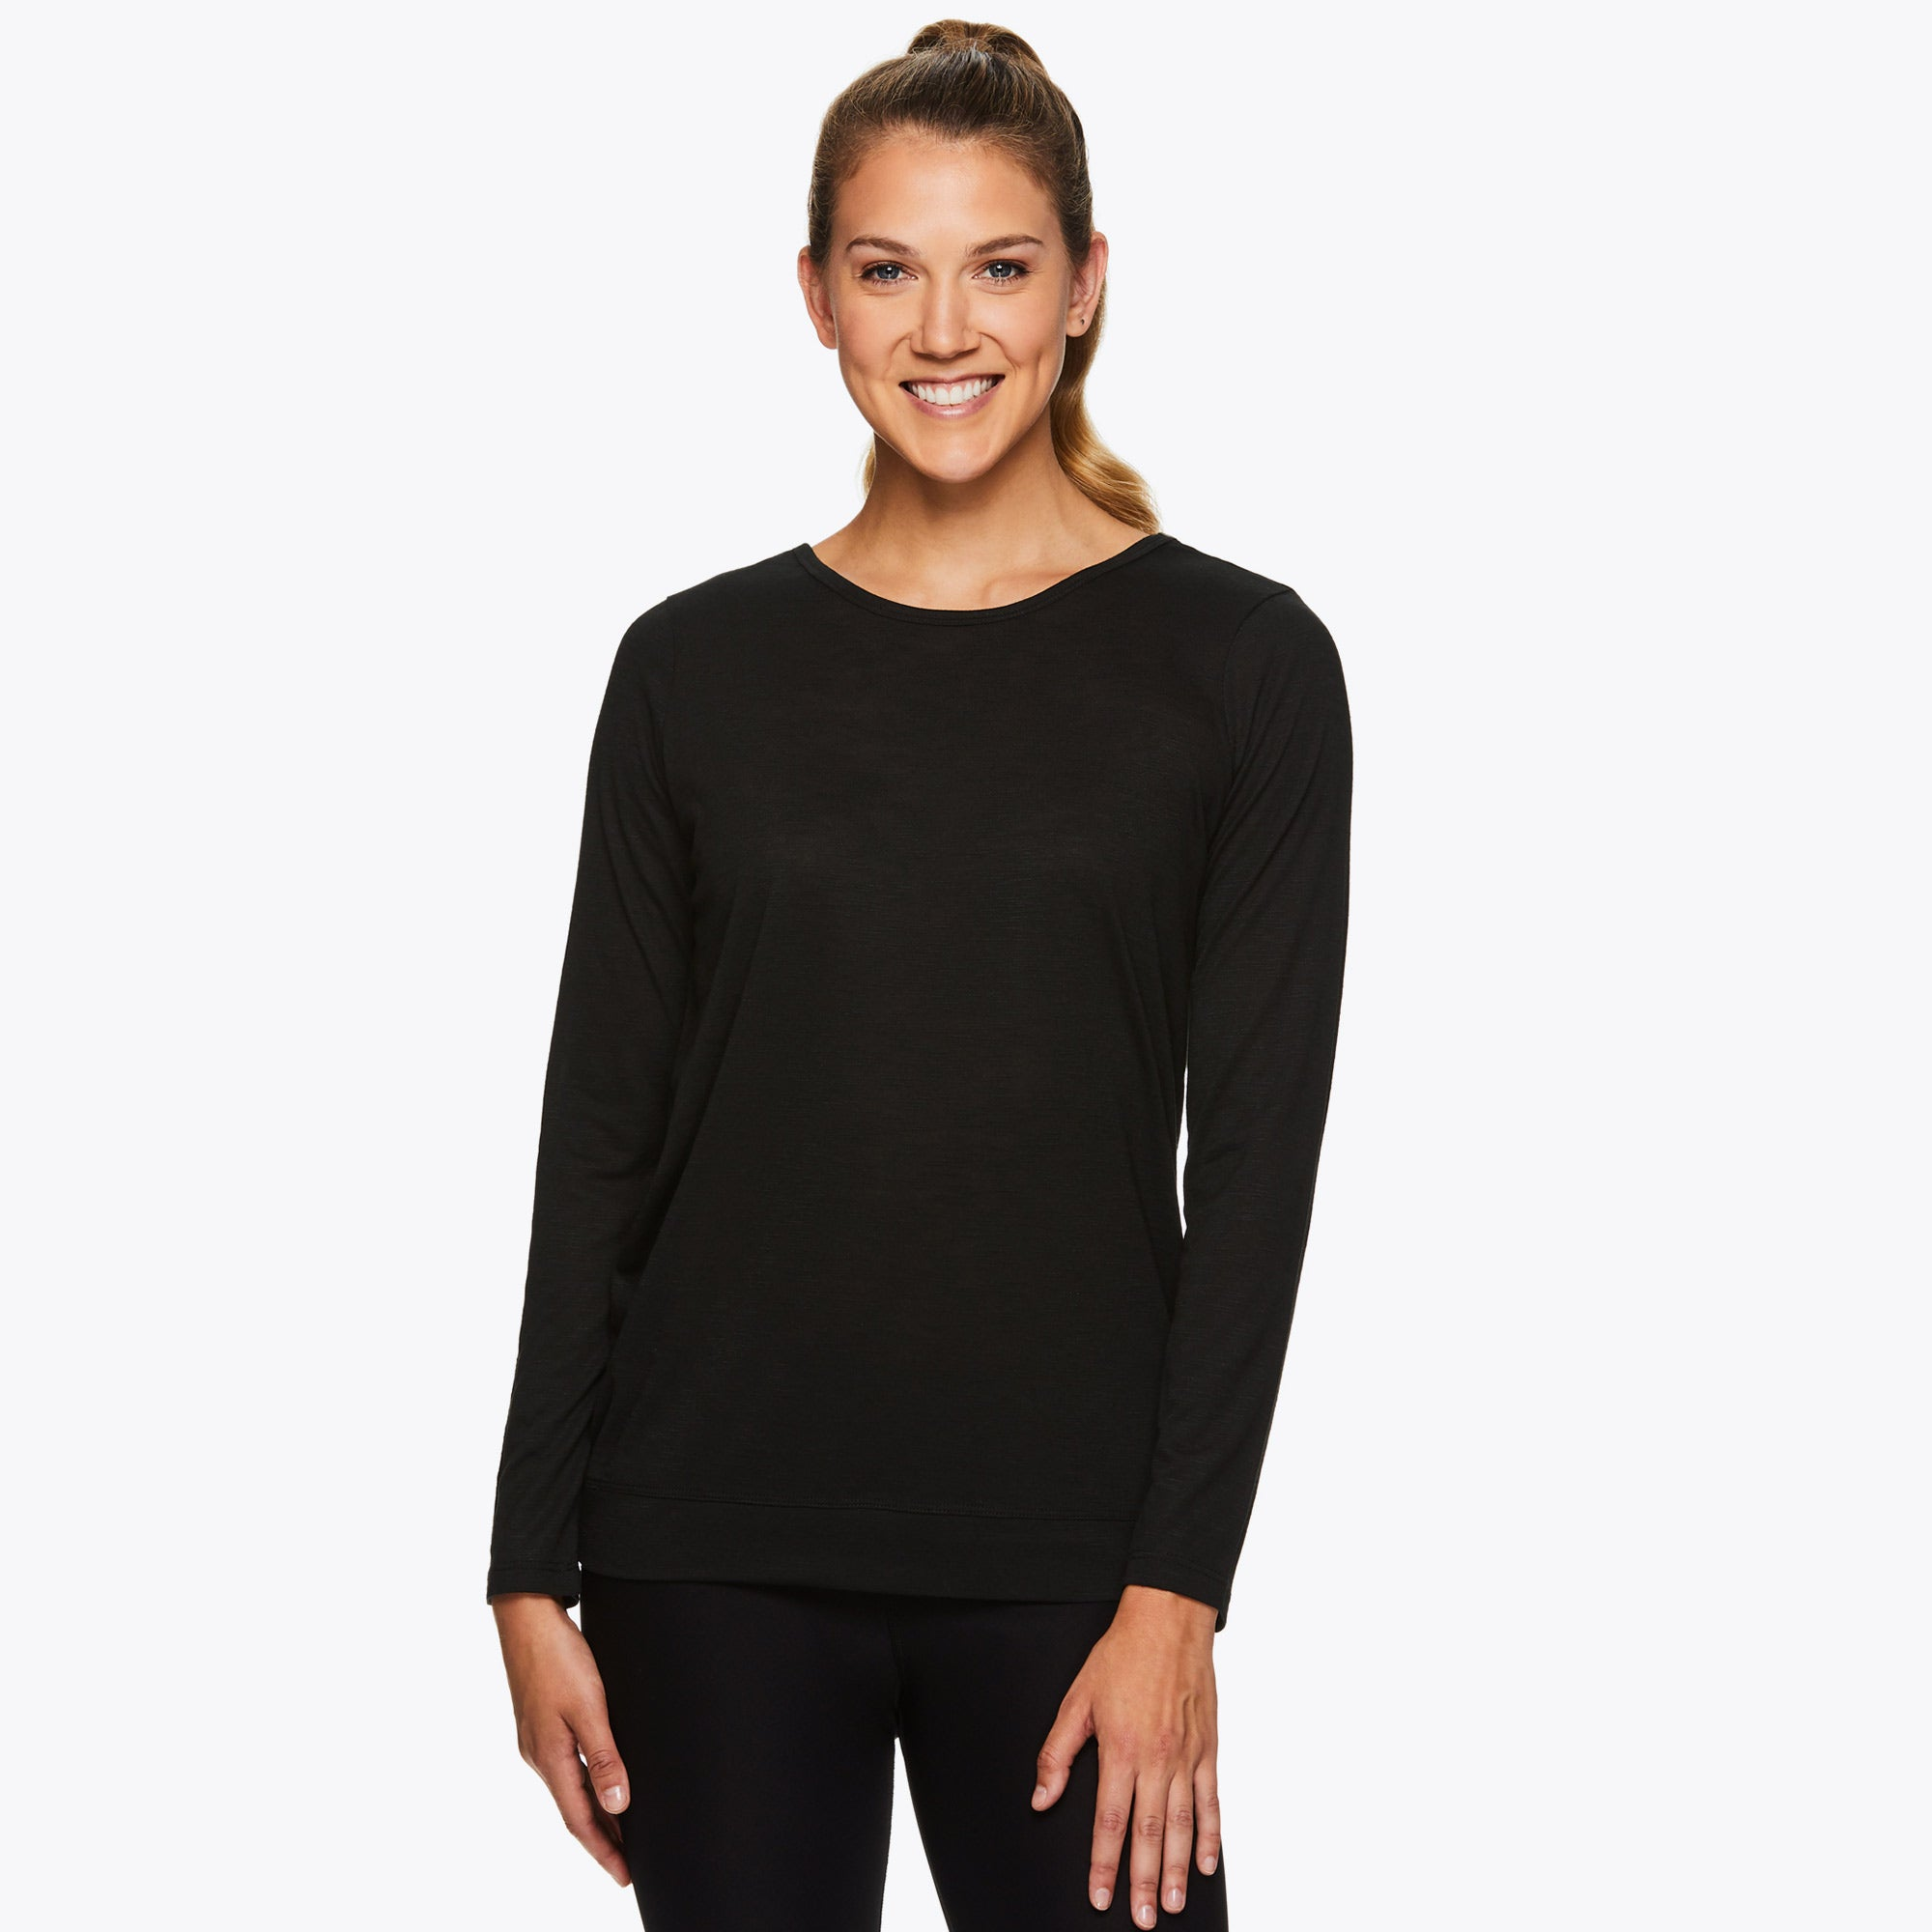 Image of Tessa Long Sleeve Top